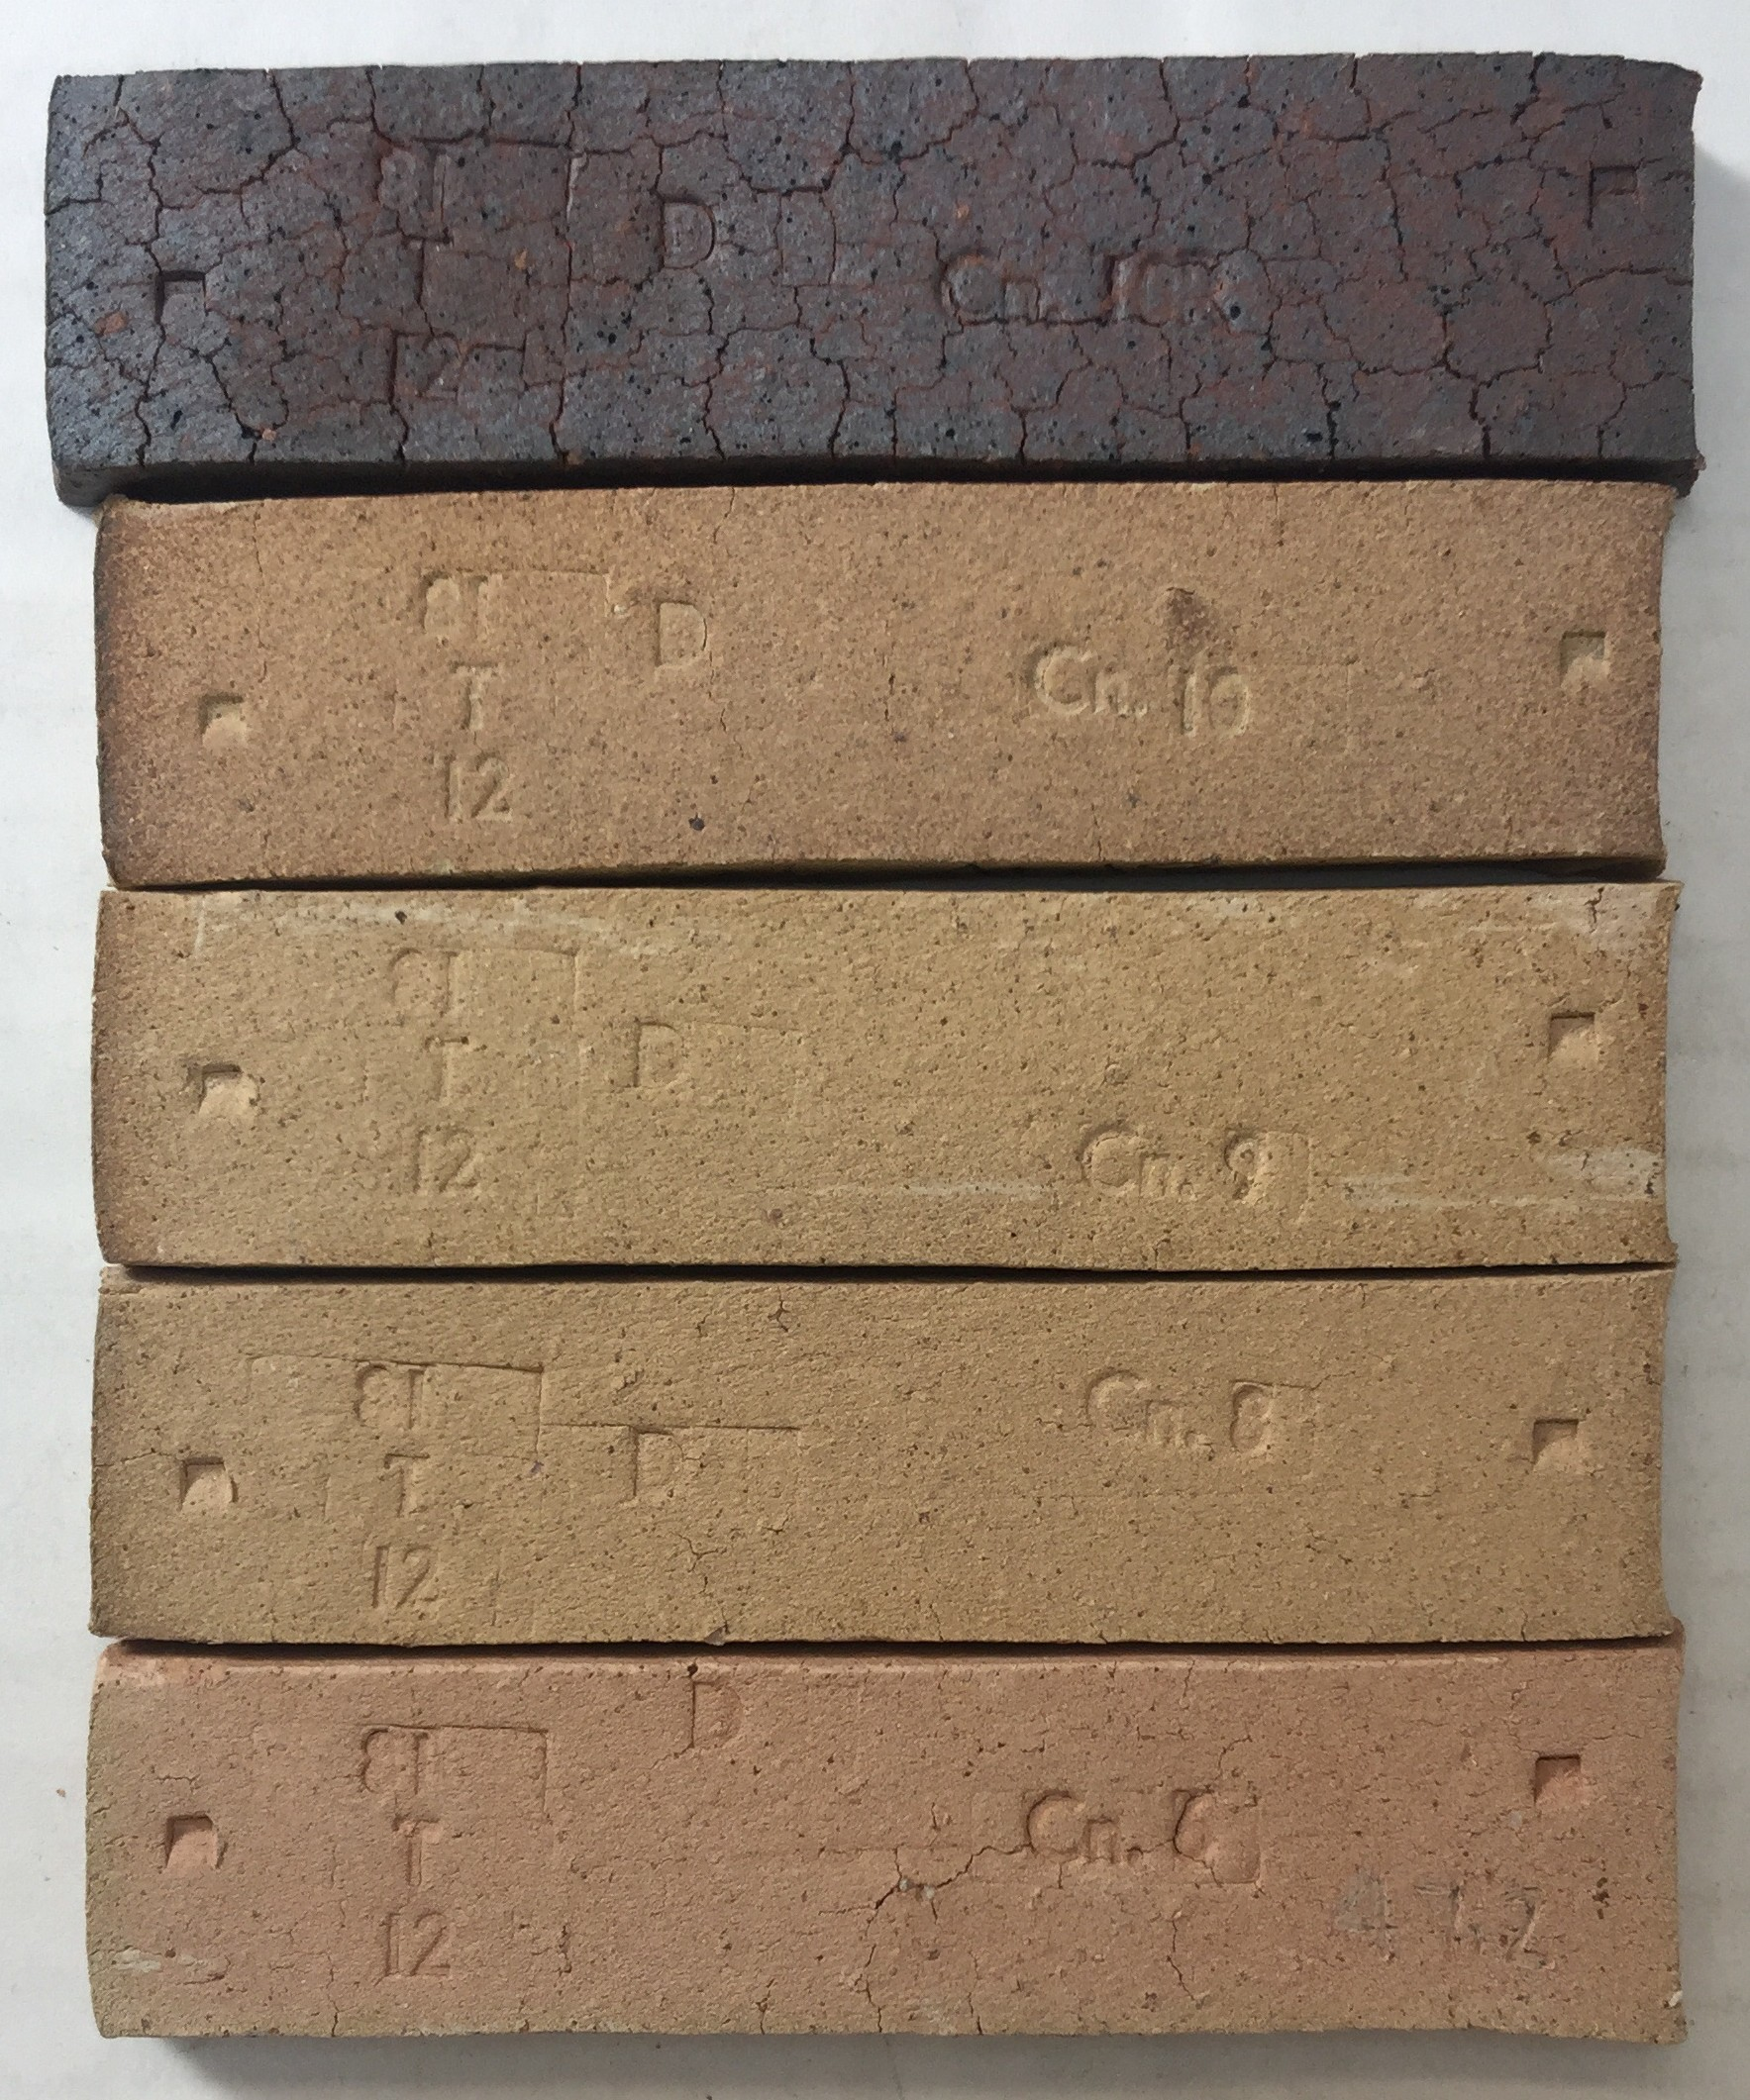 PBX Fireclay fired test bars